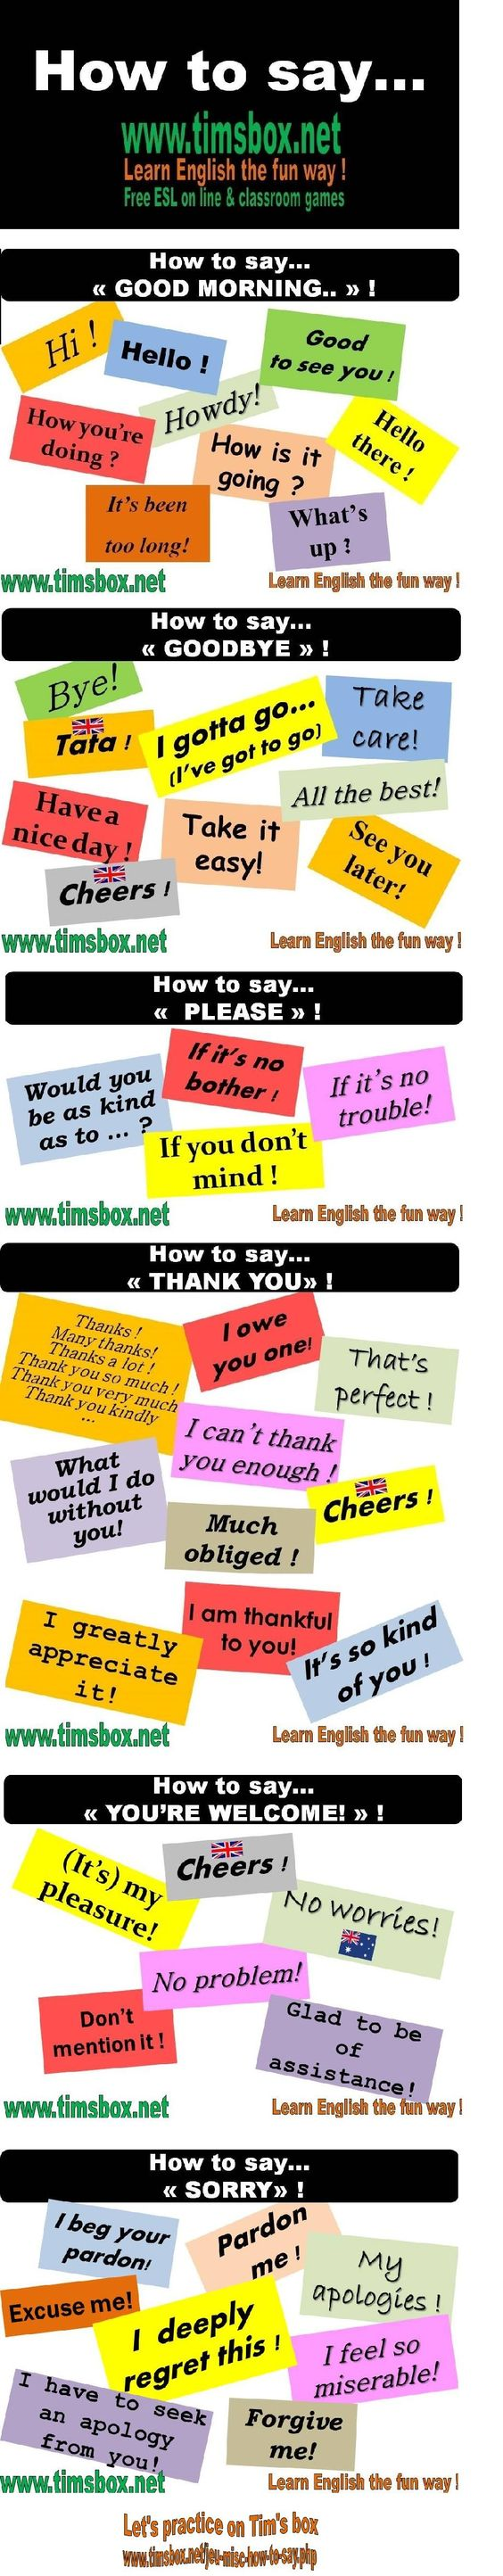 TIMSBOX-HOW TO SAY... Hello, Bye, Thank you, Sorry... ? Let's practice on http://www.timsbox.net/jeu-misc-how-to-say.php